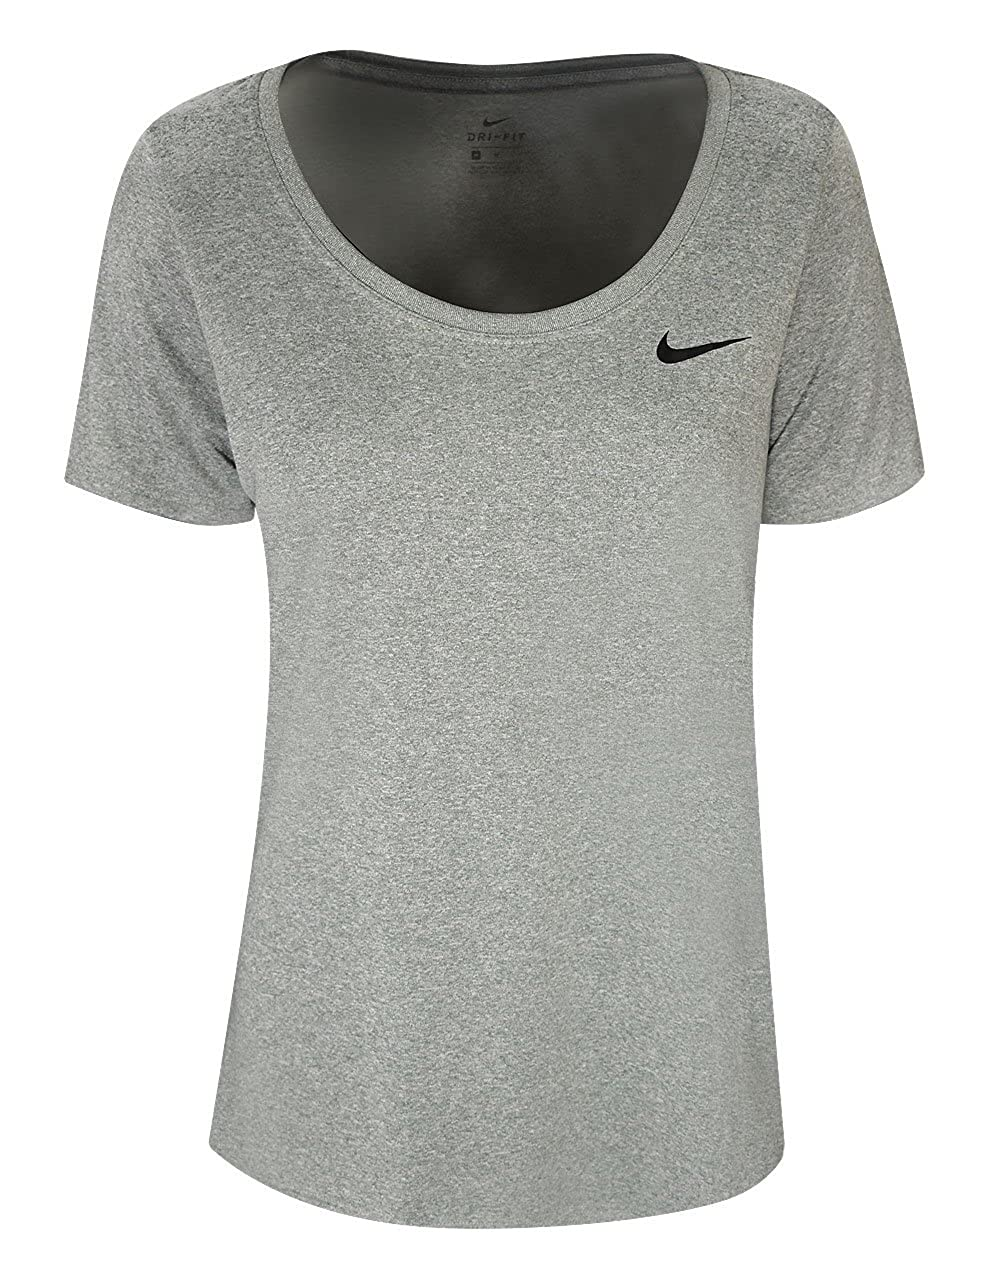 2286529e16c Made in USA or Imported Nike Dry fabric helps keep you dry and comfortable.  Scoop-neck design for a nonrestrictive fit and feminine silhouette.